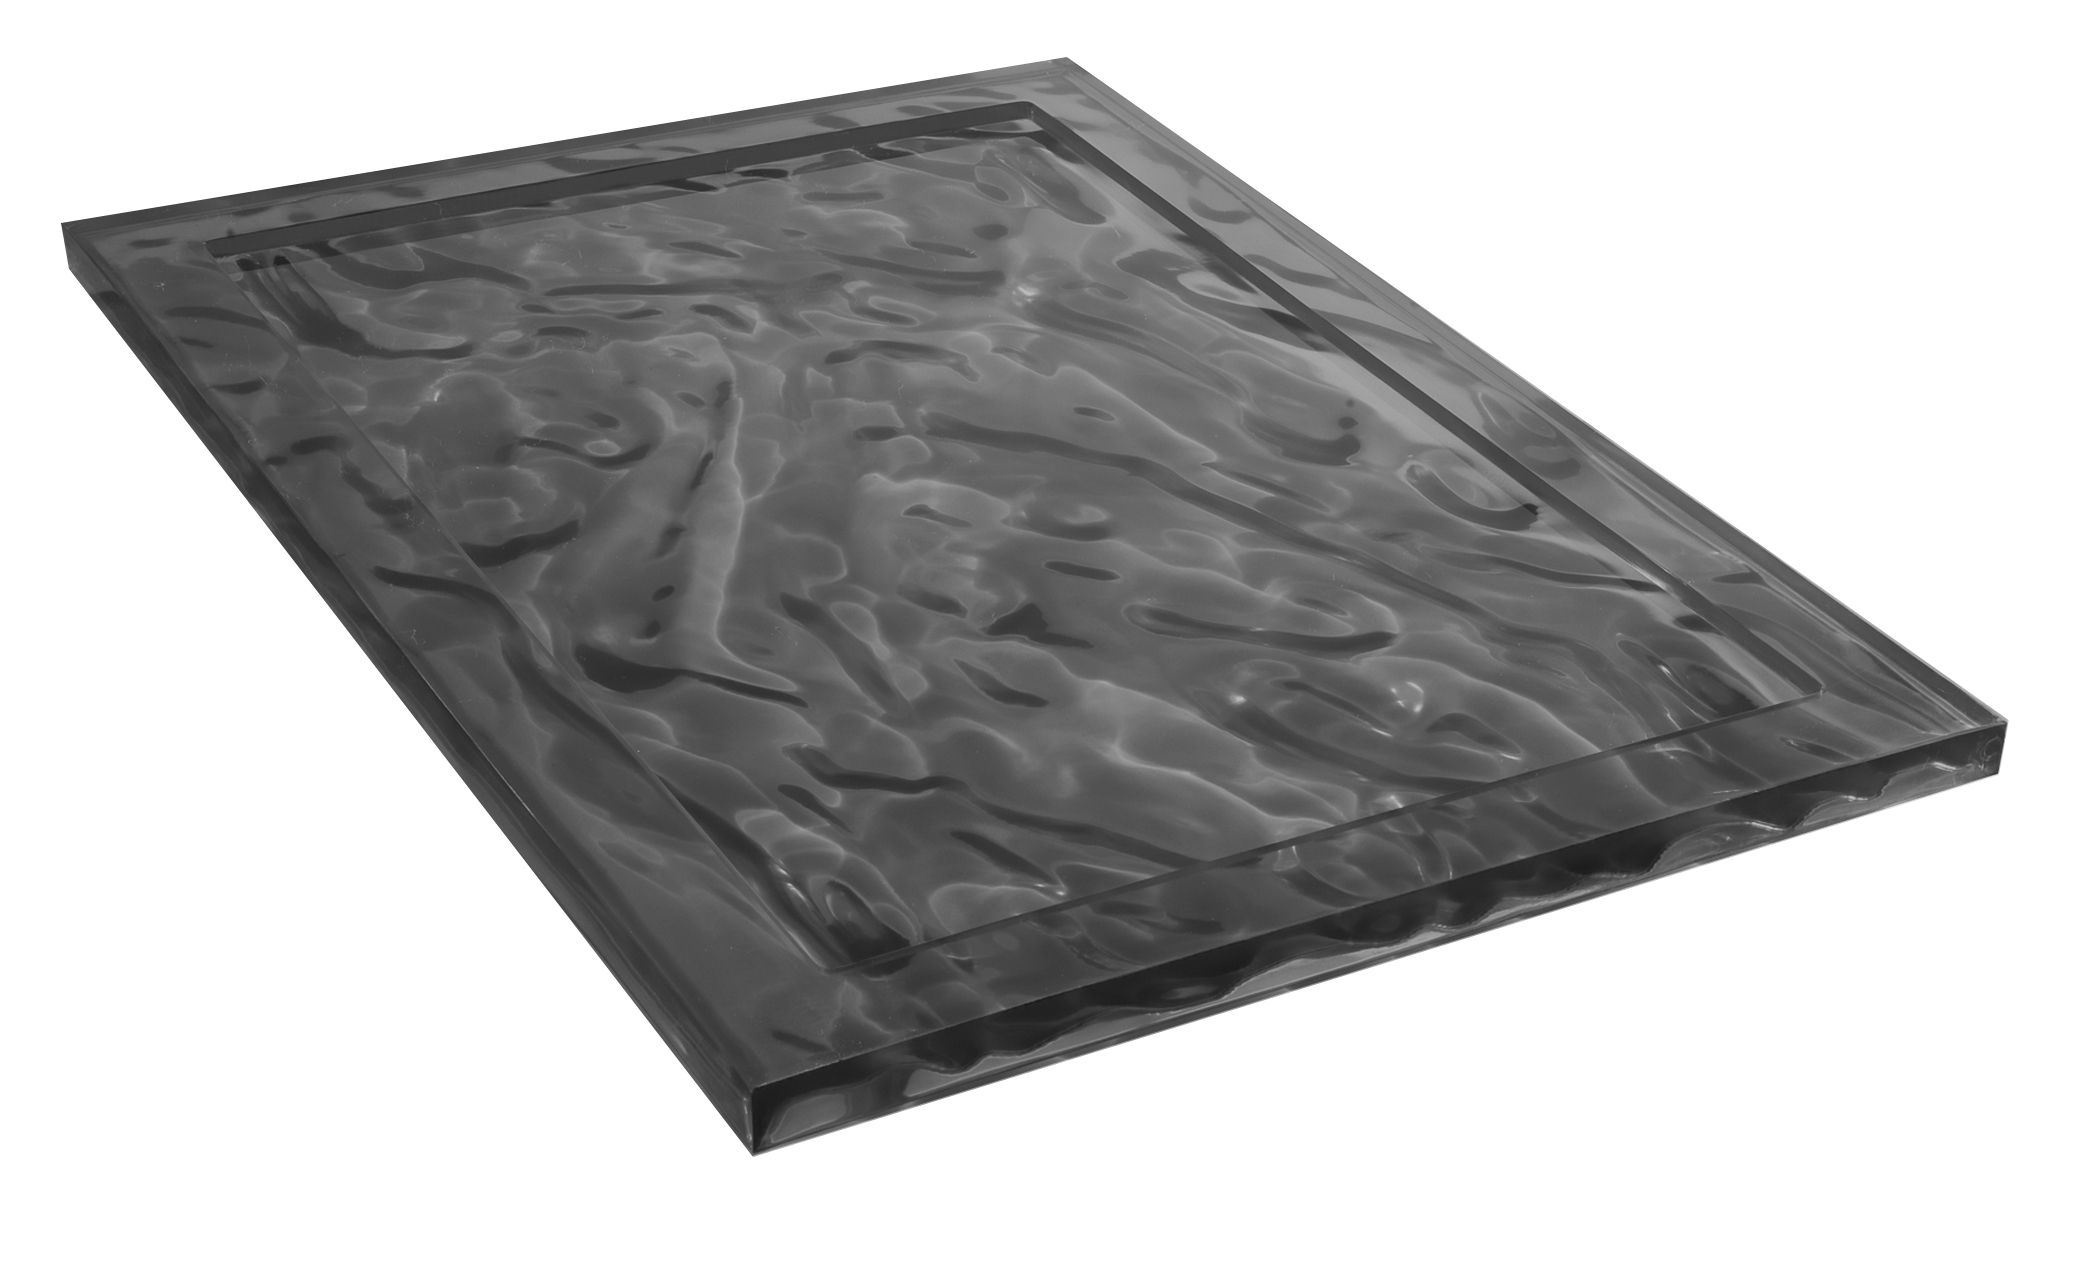 Tableware - Trays - Dune Large Tray - 55 x 38 cm by Kartell - Smoked - Technopolymer